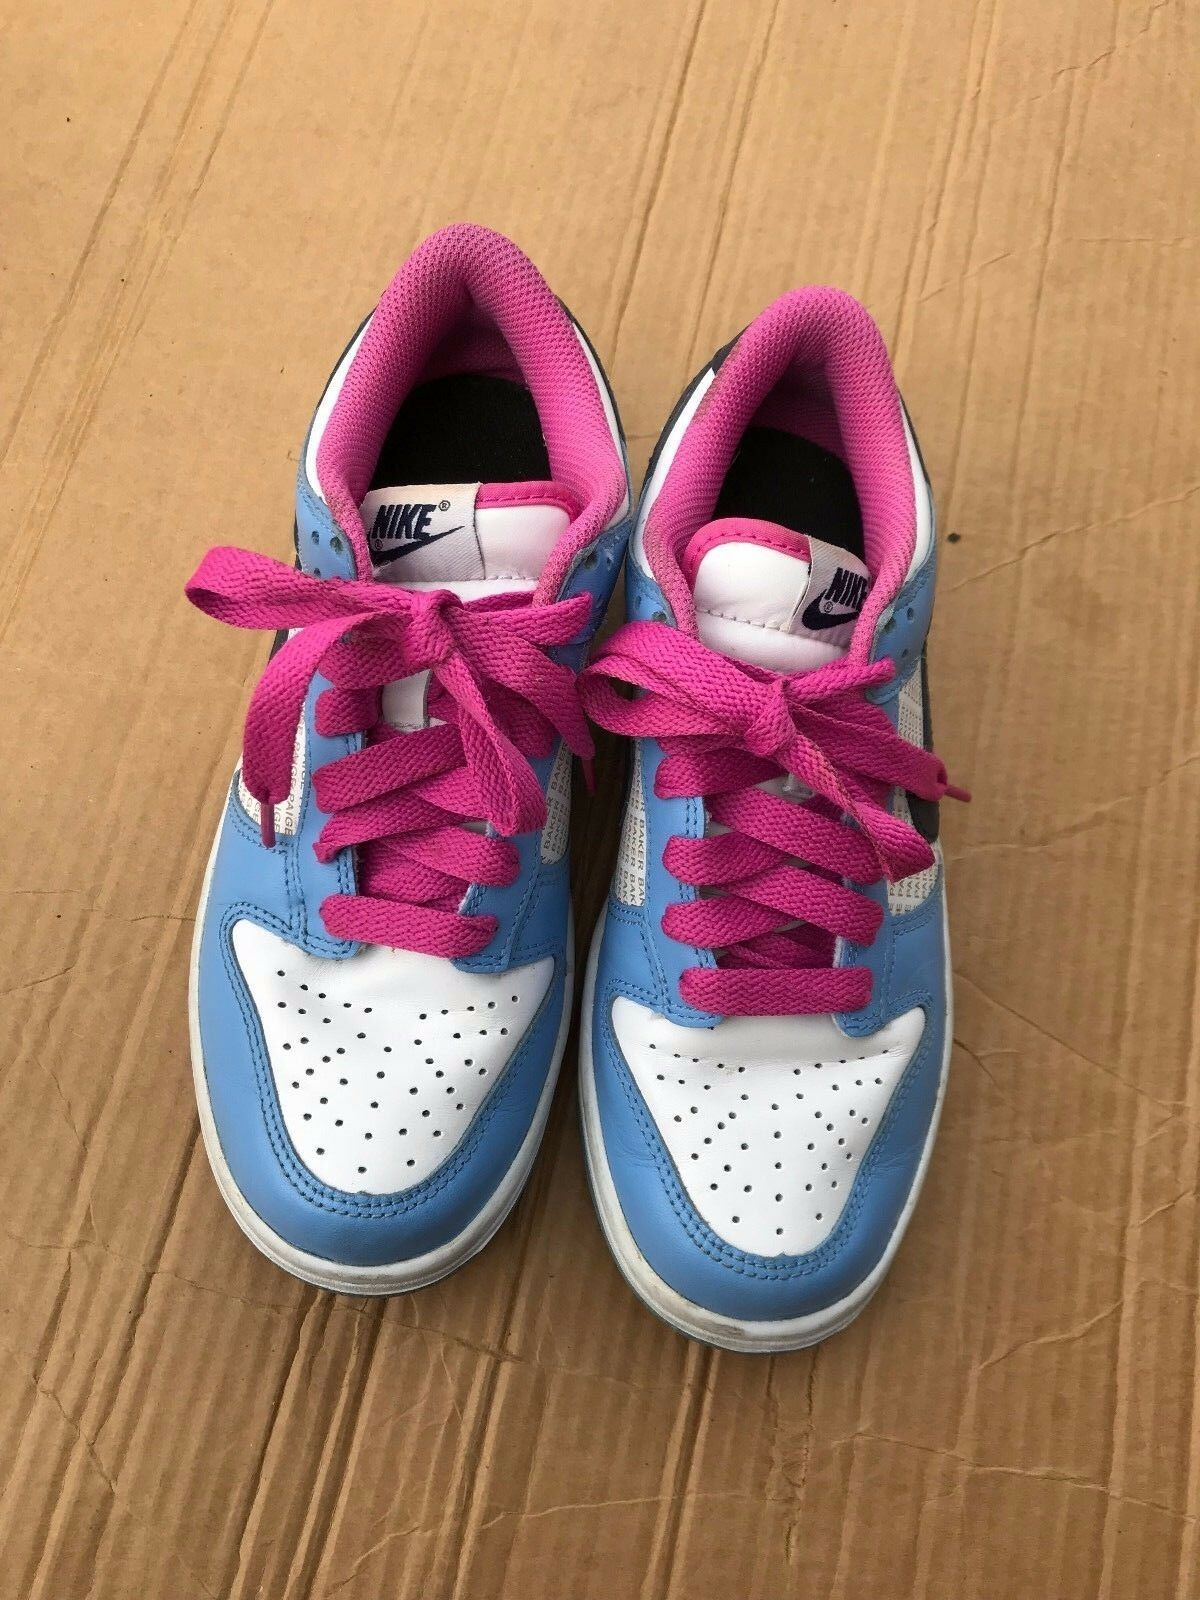 Nike Womens Sneakers Shoes Size 6.5M  Pink Blue Blue Blue White 55a7b0